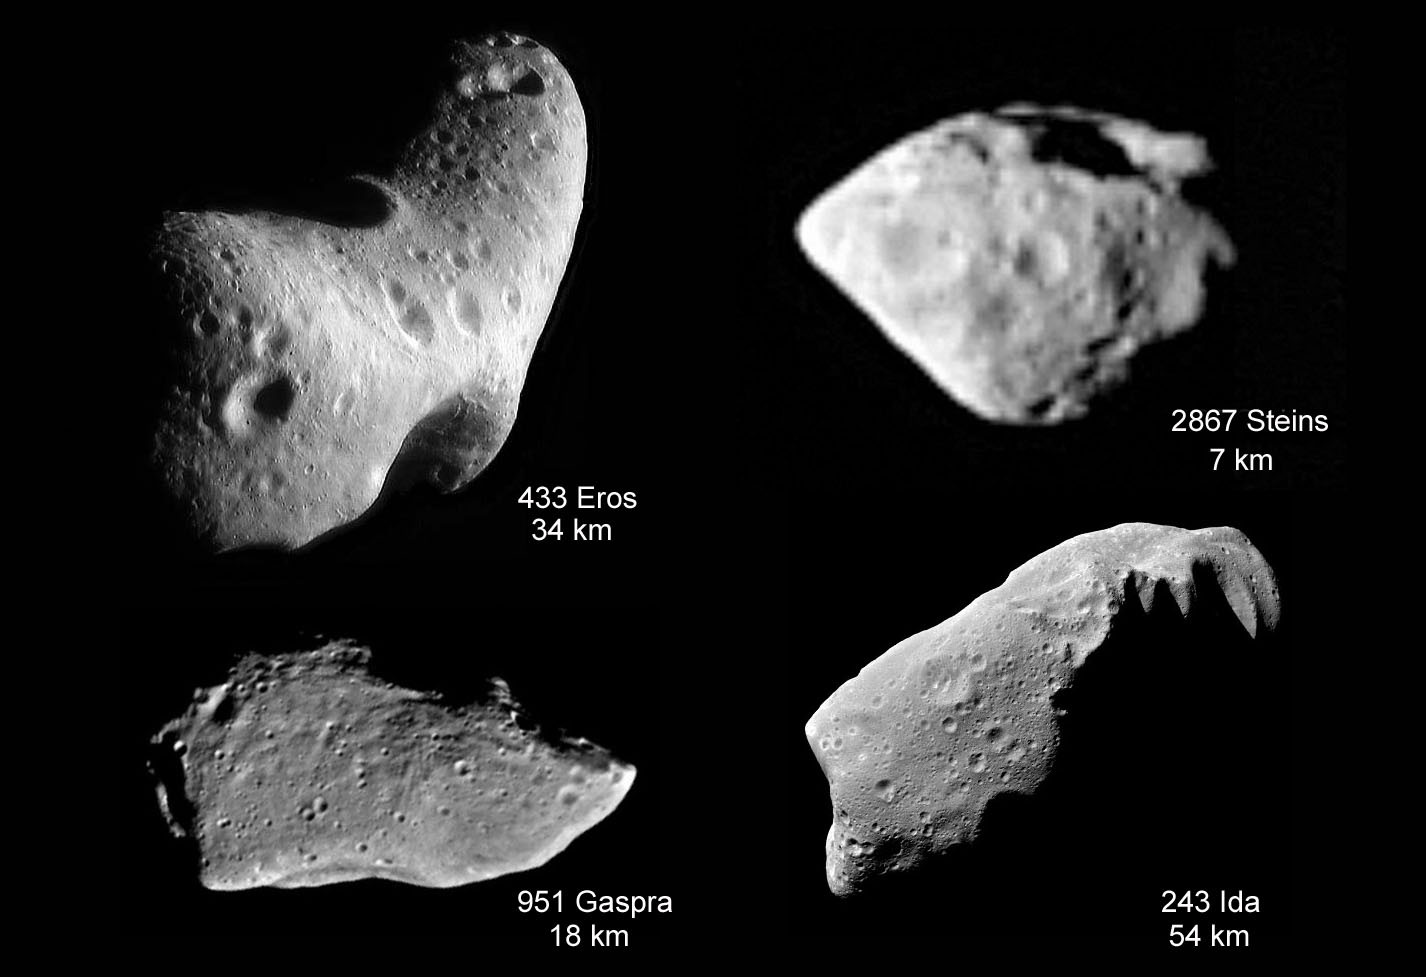 asteroid belt examples - photo #13